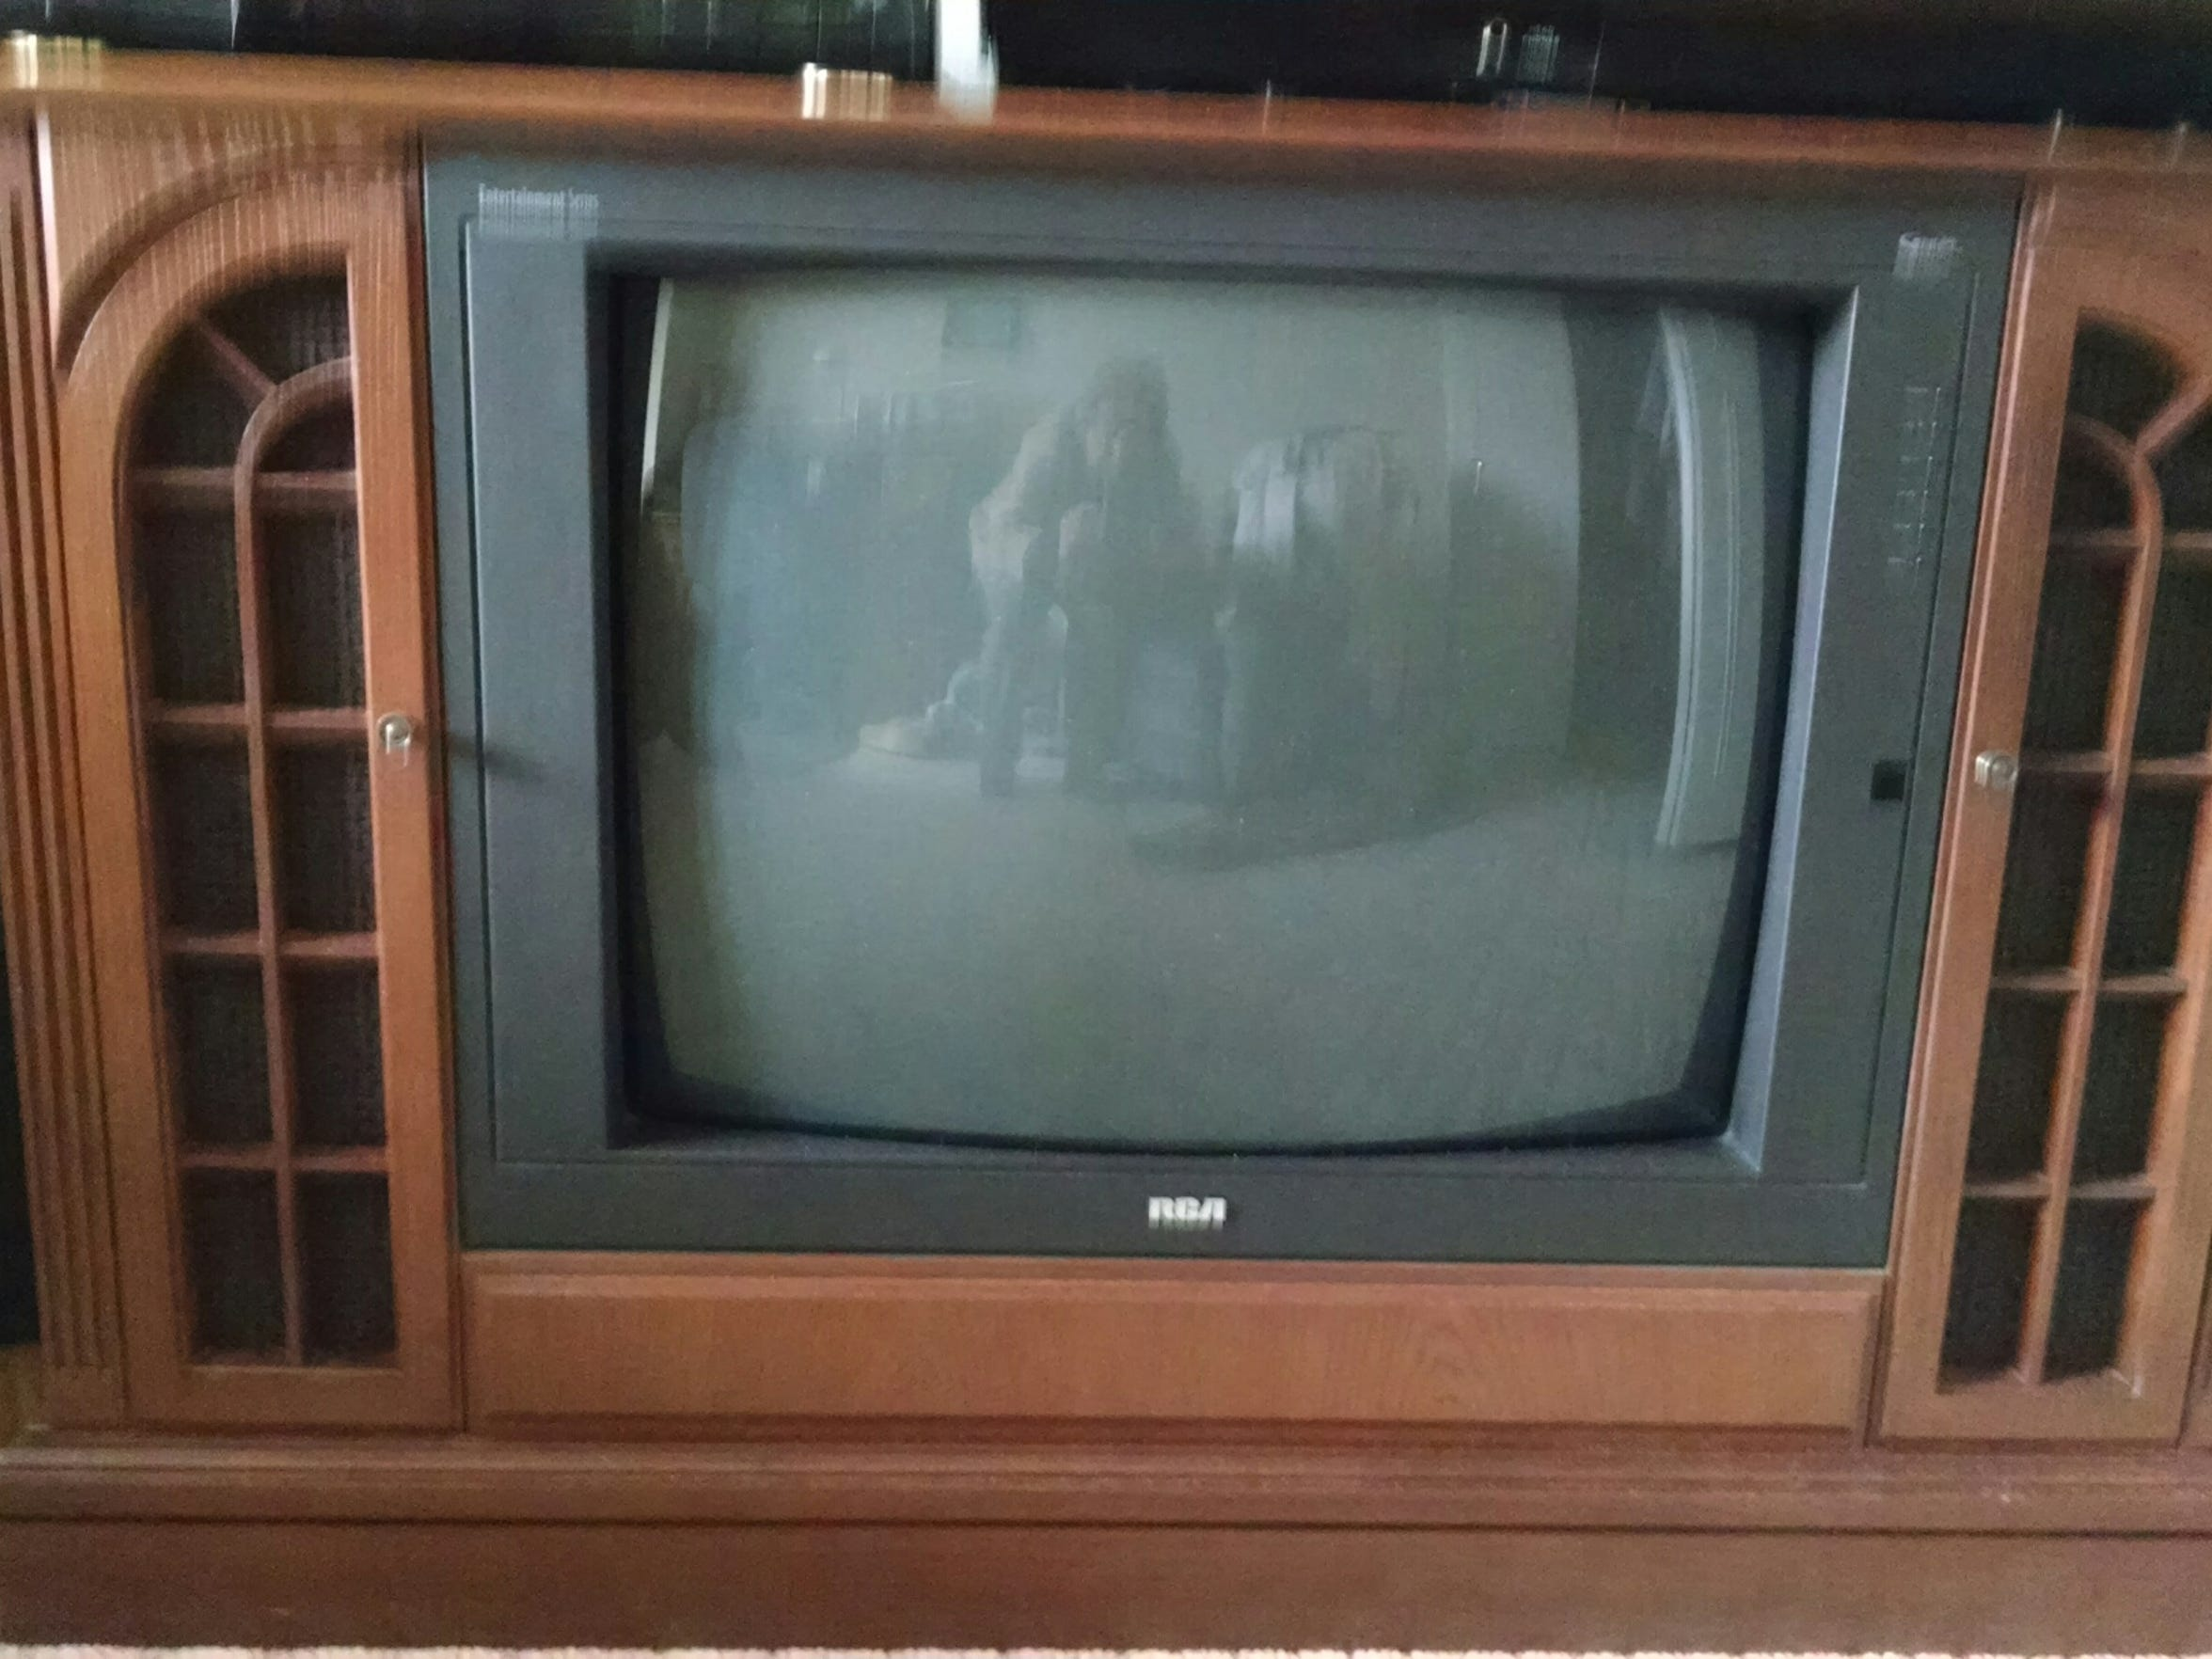 This console TV set is a dinosaur, but it looked good